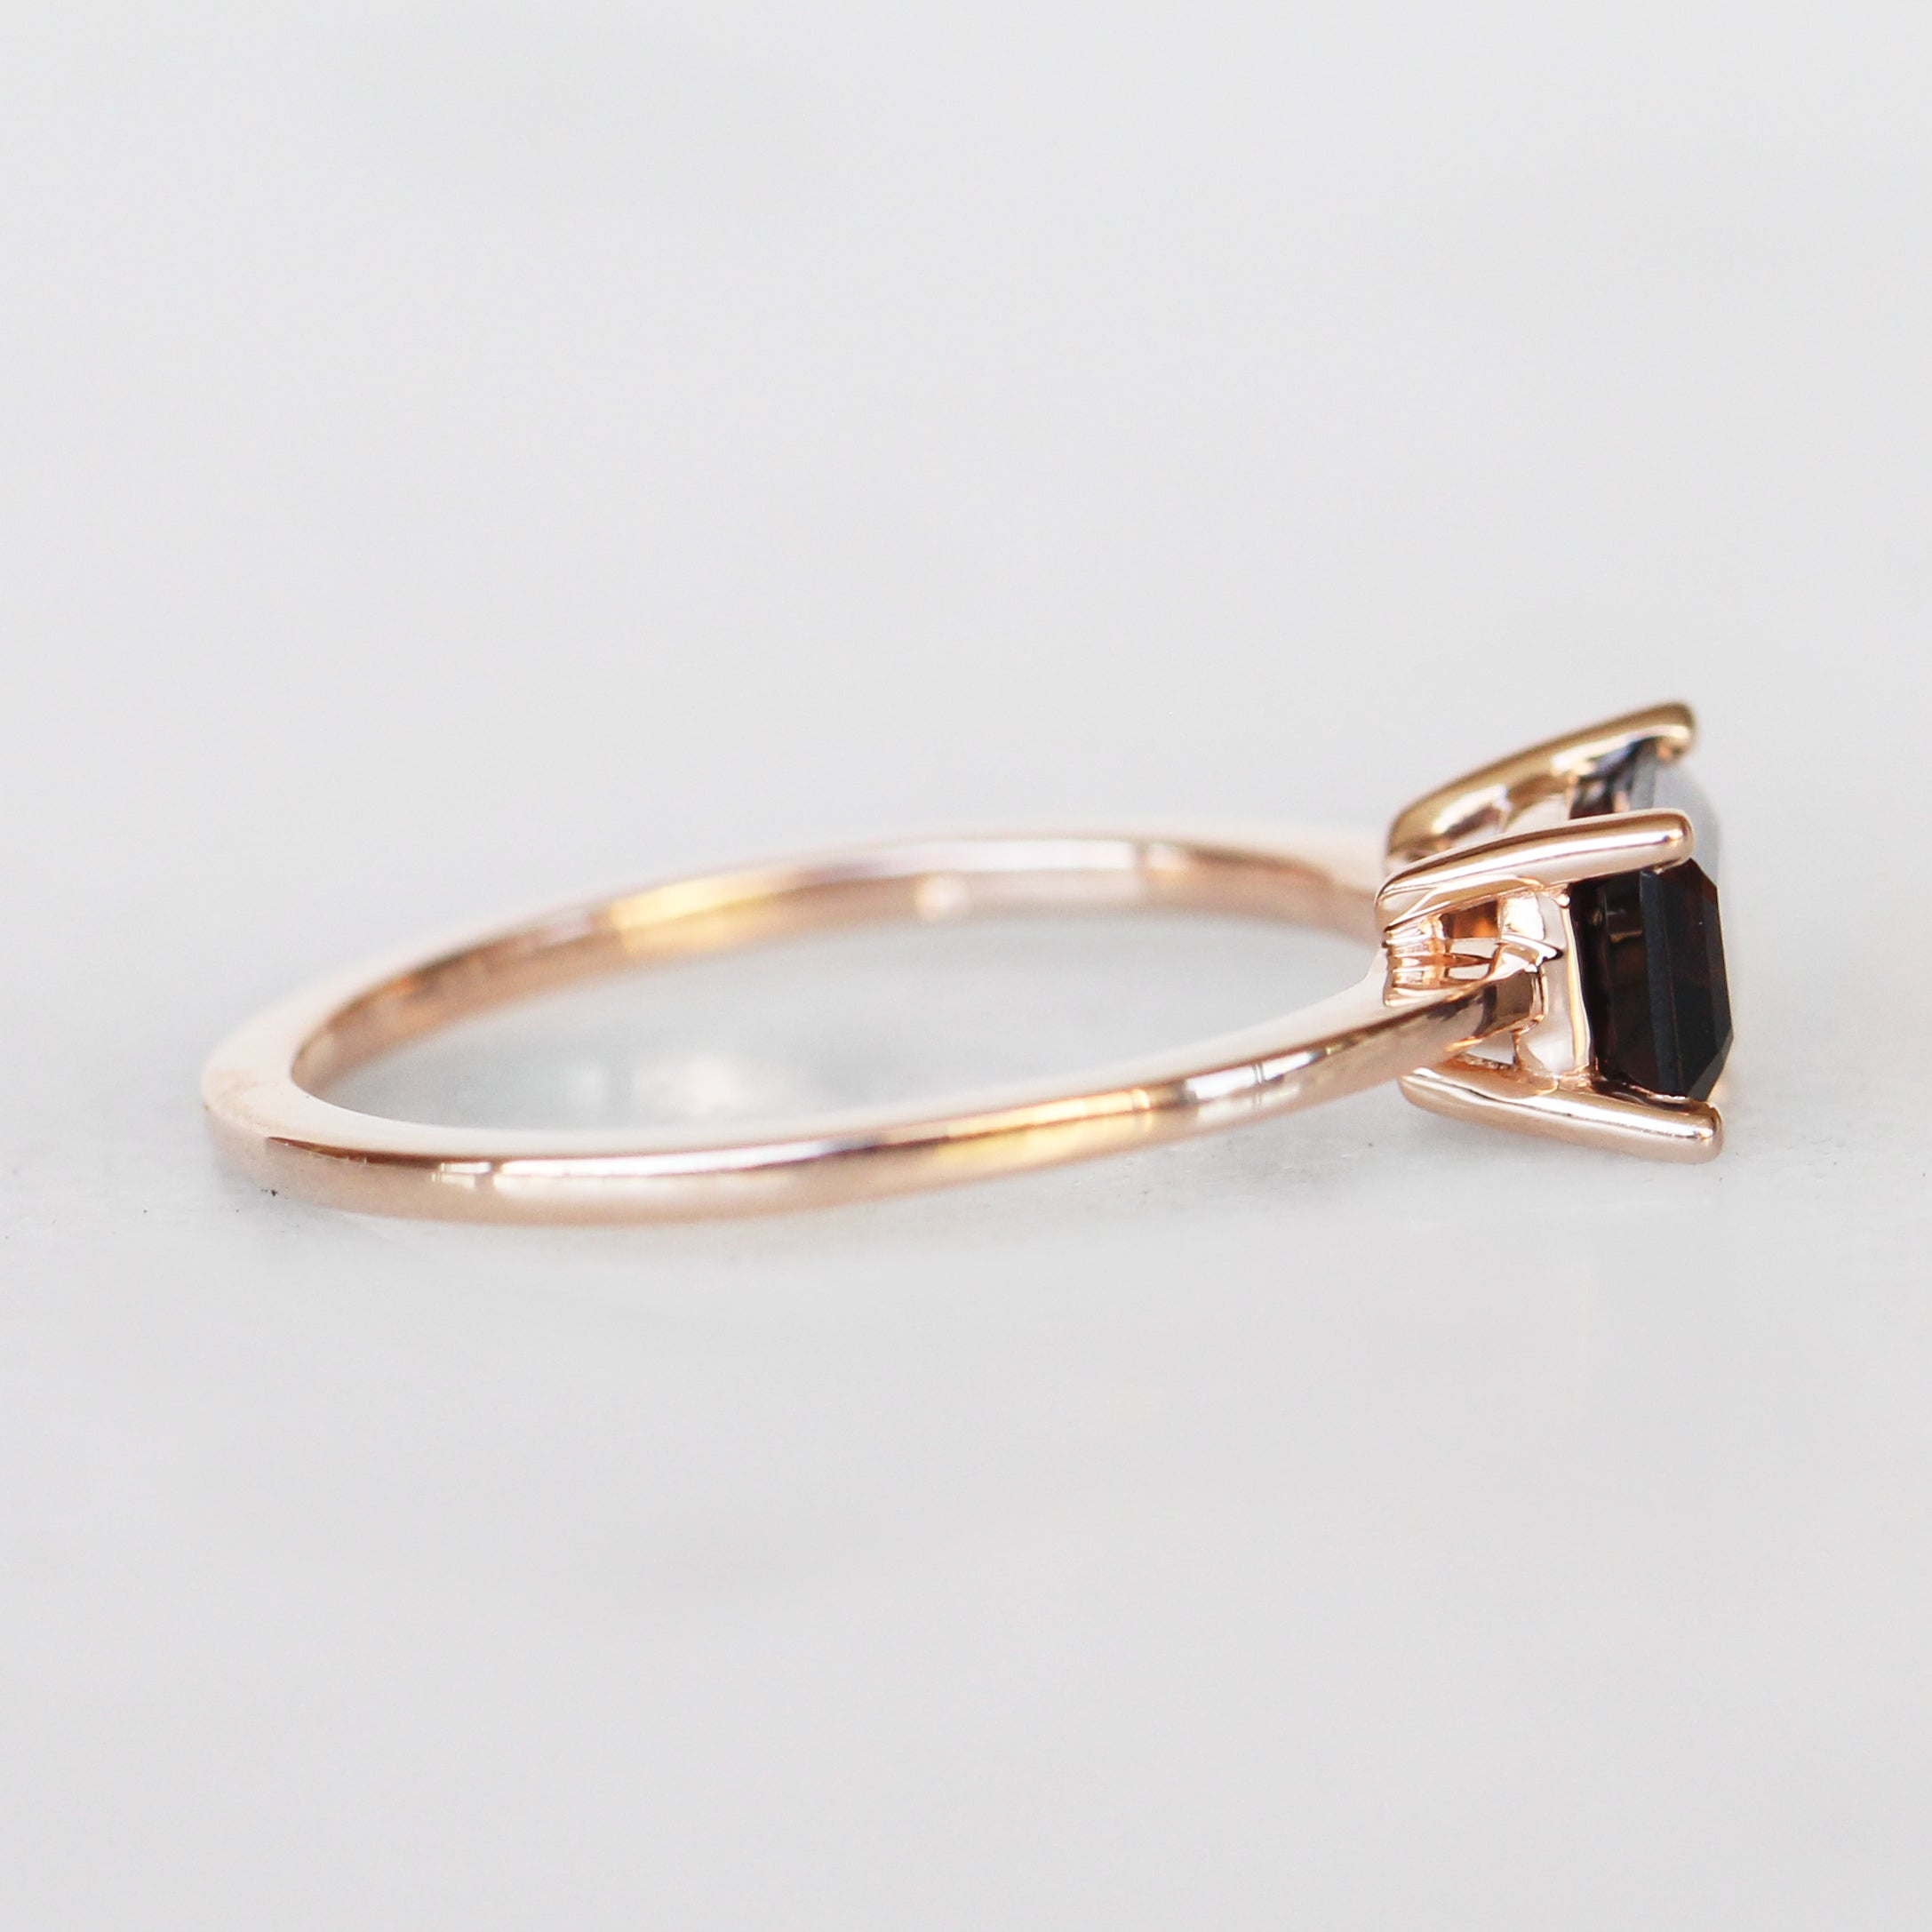 Ruthie Ring with Smokey Quartz in 10k Rose Gold - Ready to Size and Ship - Celestial Diamonds ® by Midwinter Co.